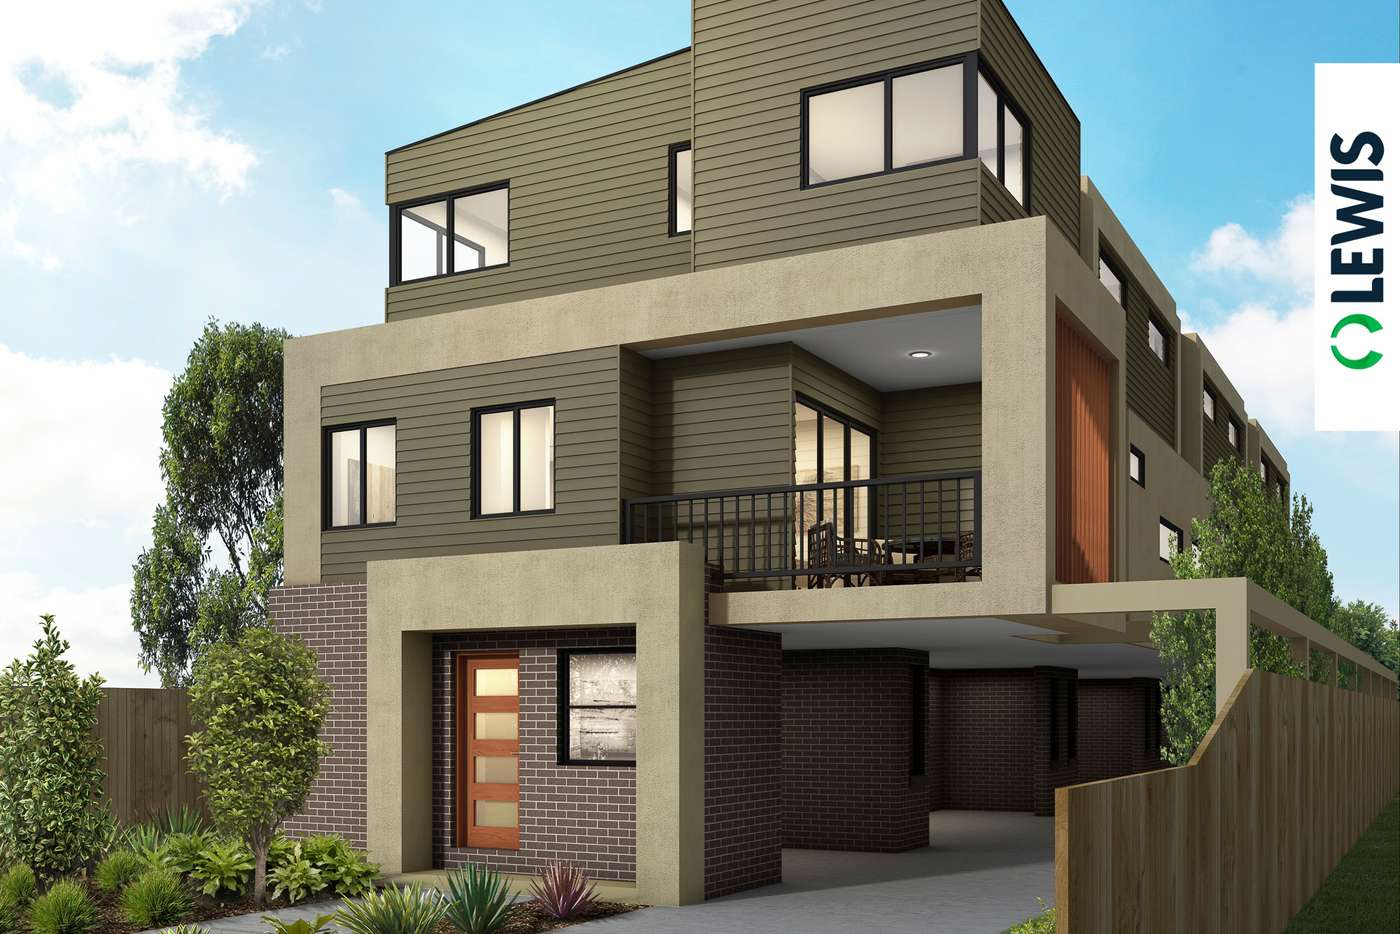 Main view of Homely townhouse listing, 2 & 3/445 Bell Street, Pascoe Vale South VIC 3044